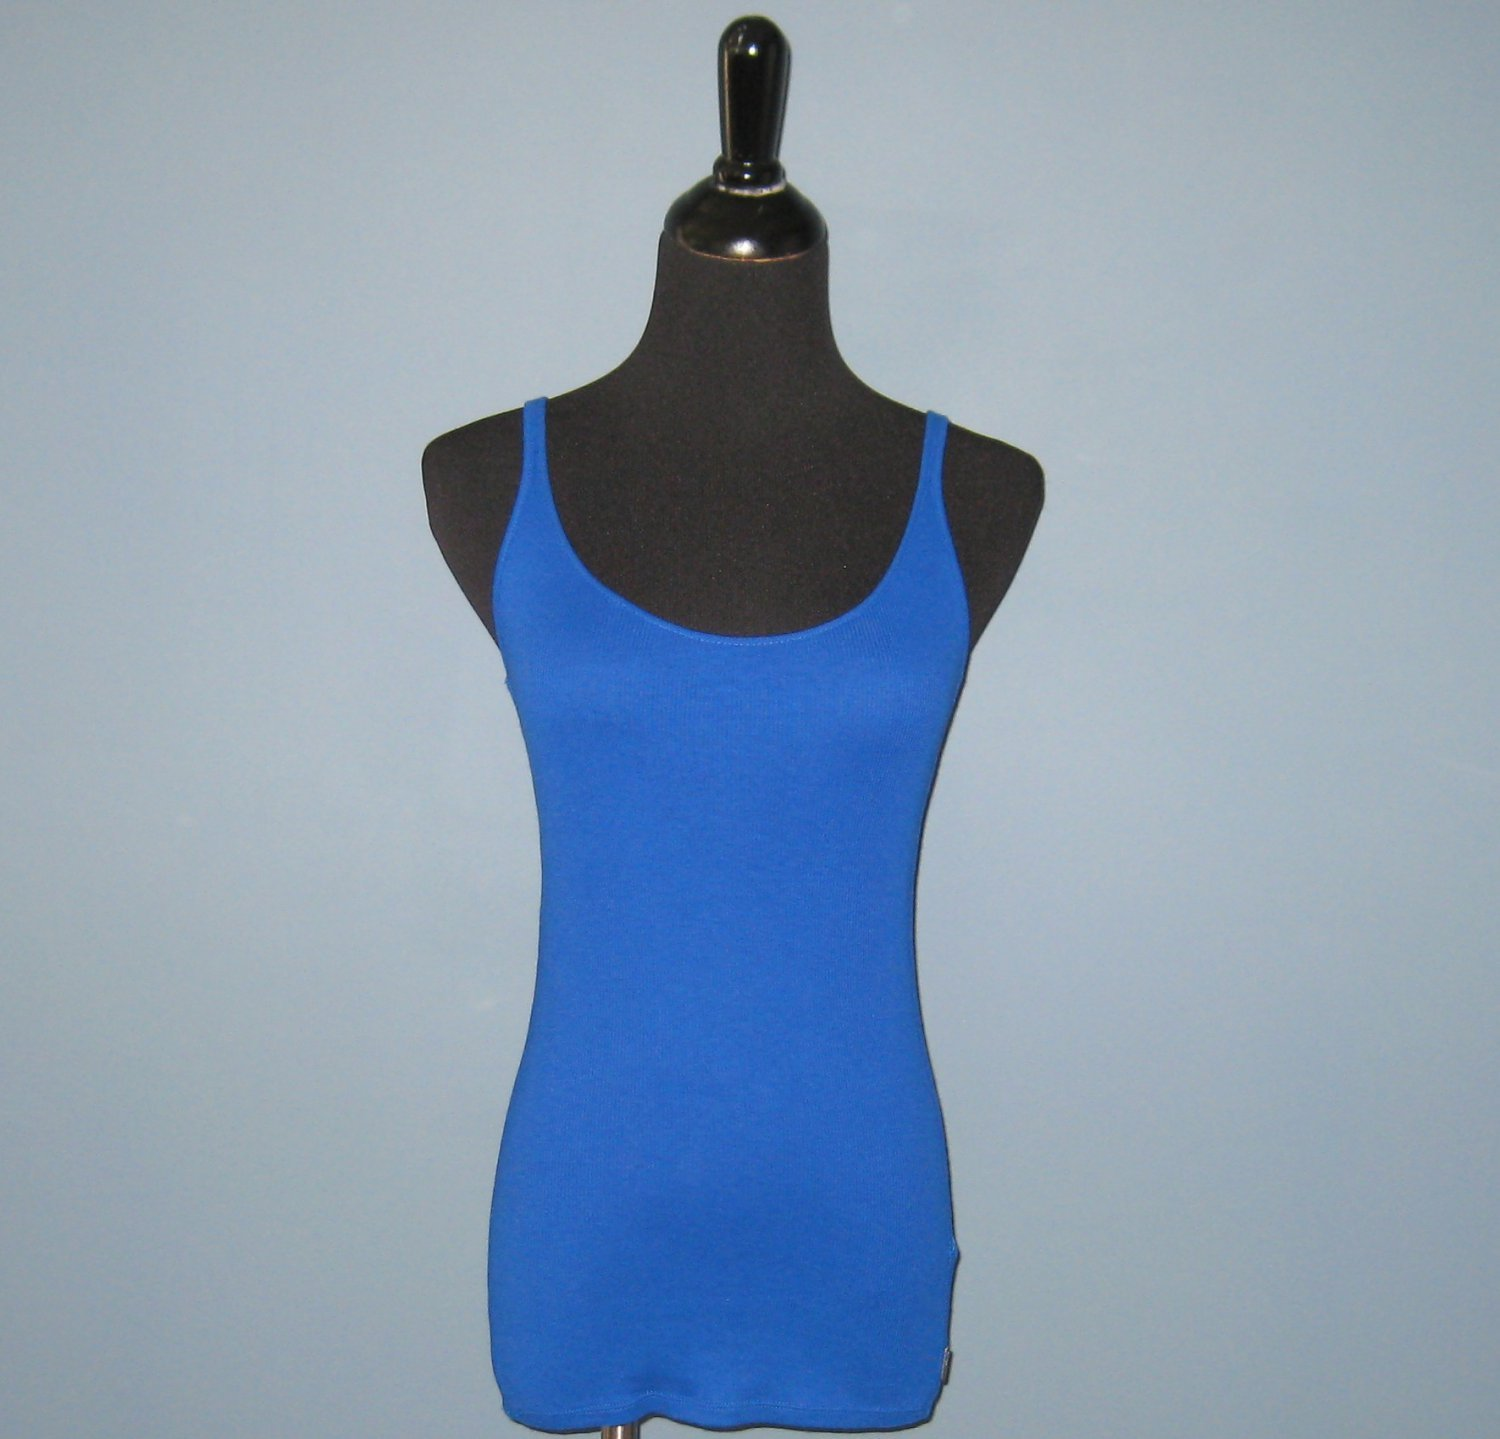 NWT Ralph Lauren RLX Royal Blue Cotton Blend Ribbed Spaghetti Tank Top - XS